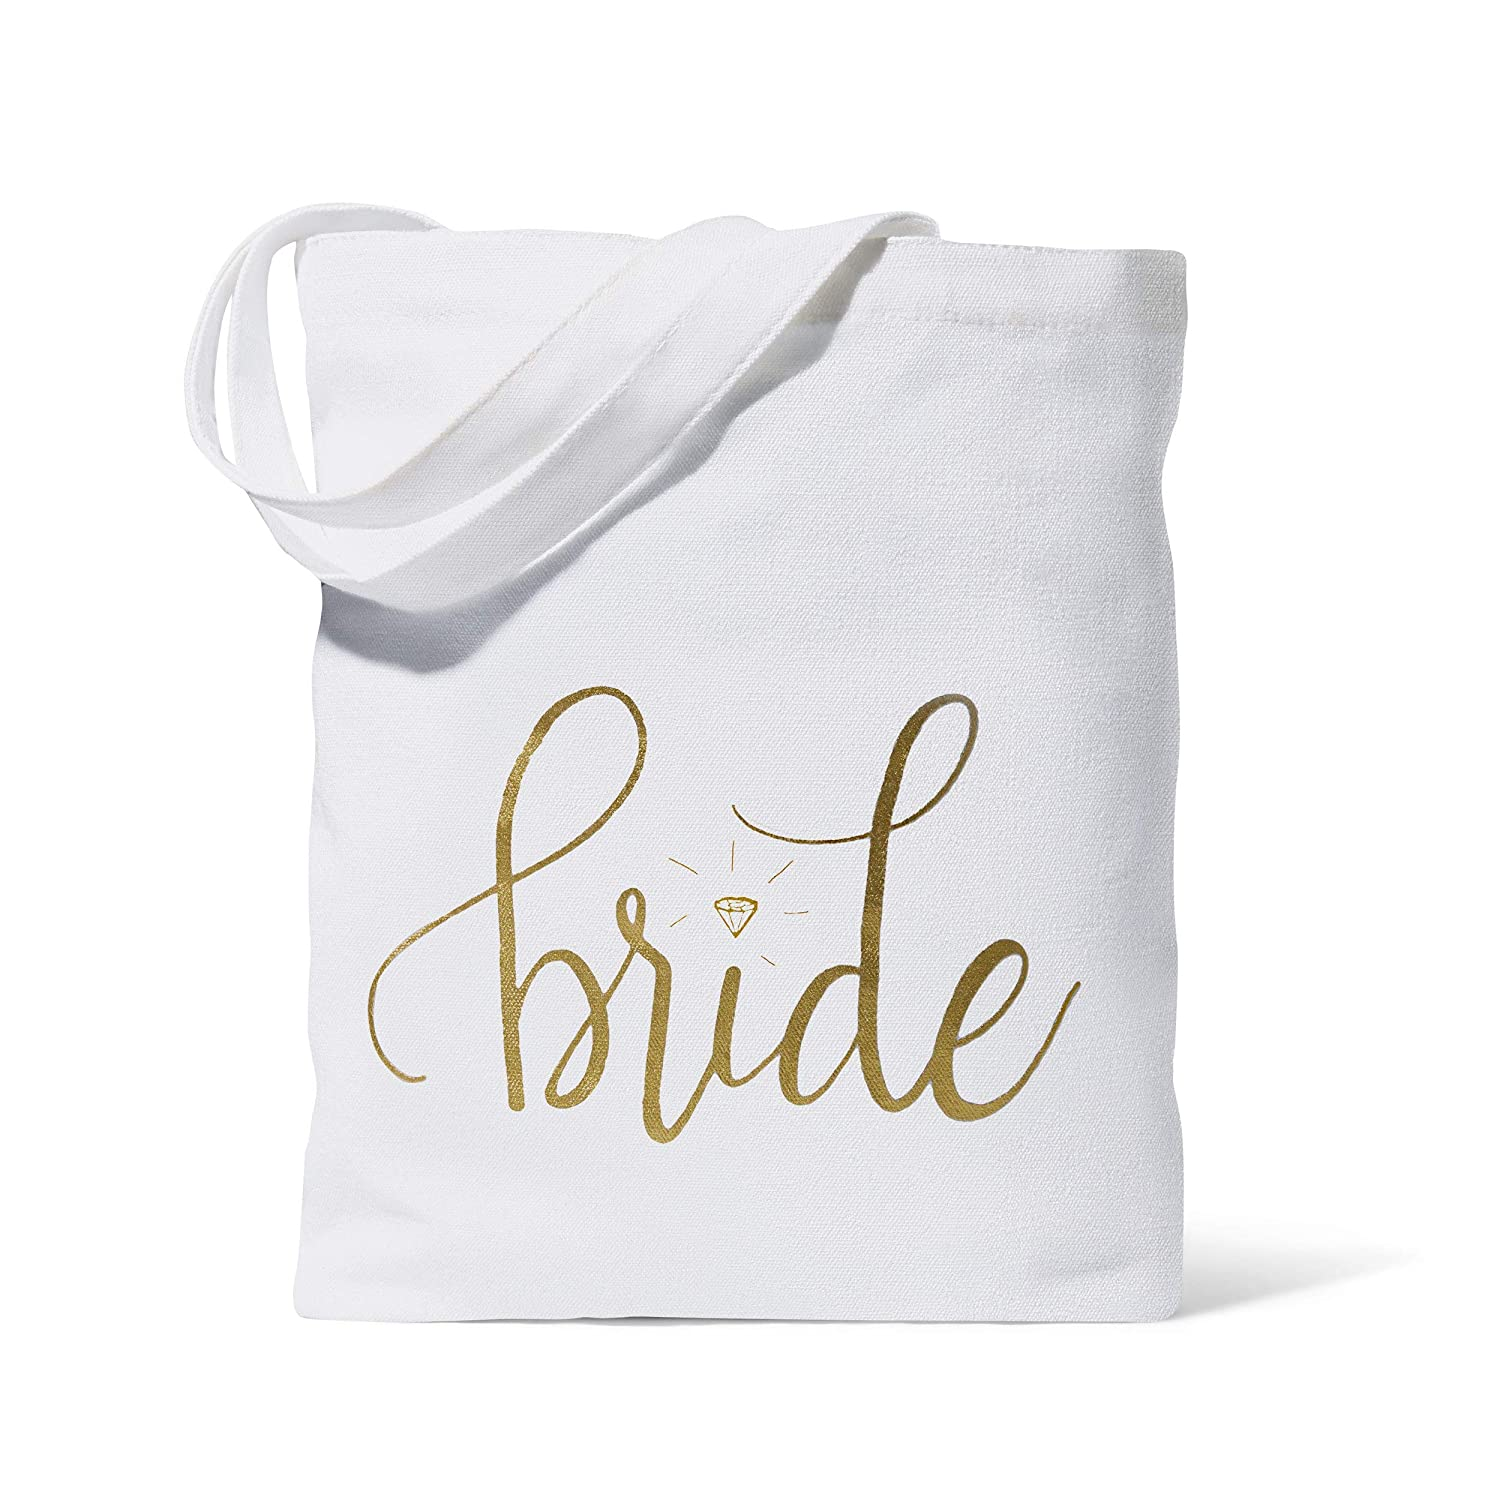 ddc48ee32d Amazon.com: 11 Piece Set of Pink Bride Tribe and Bride Canvas Beach Tote  Bags for Bachelorette Parties, Weddings and Bridal Showers!: Health &  Personal Care